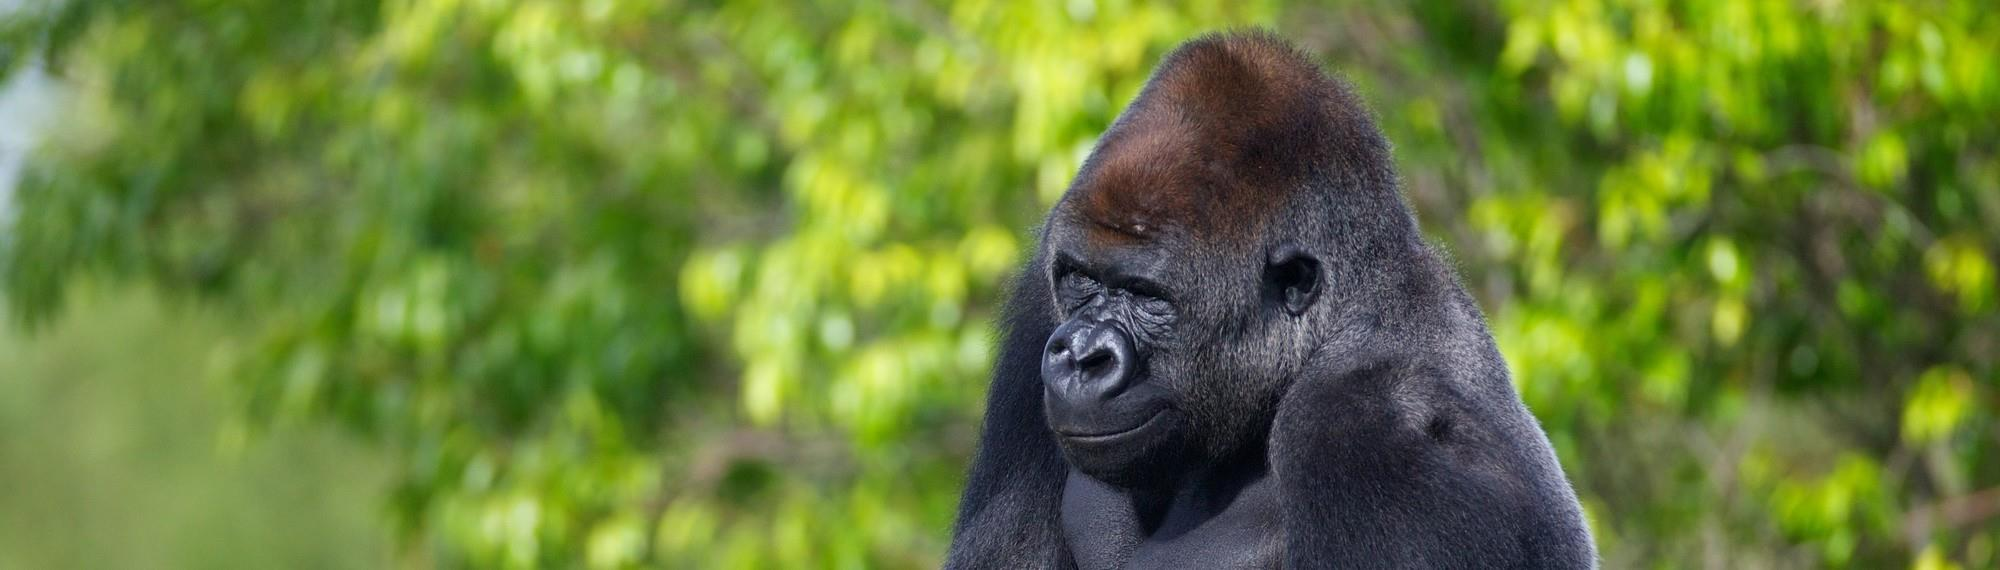 Western Lowland Gorilla Yakini head and shoulder profile of him sitting in front of green foliage looking left. He is black with a tan patch on his head and a silver back.